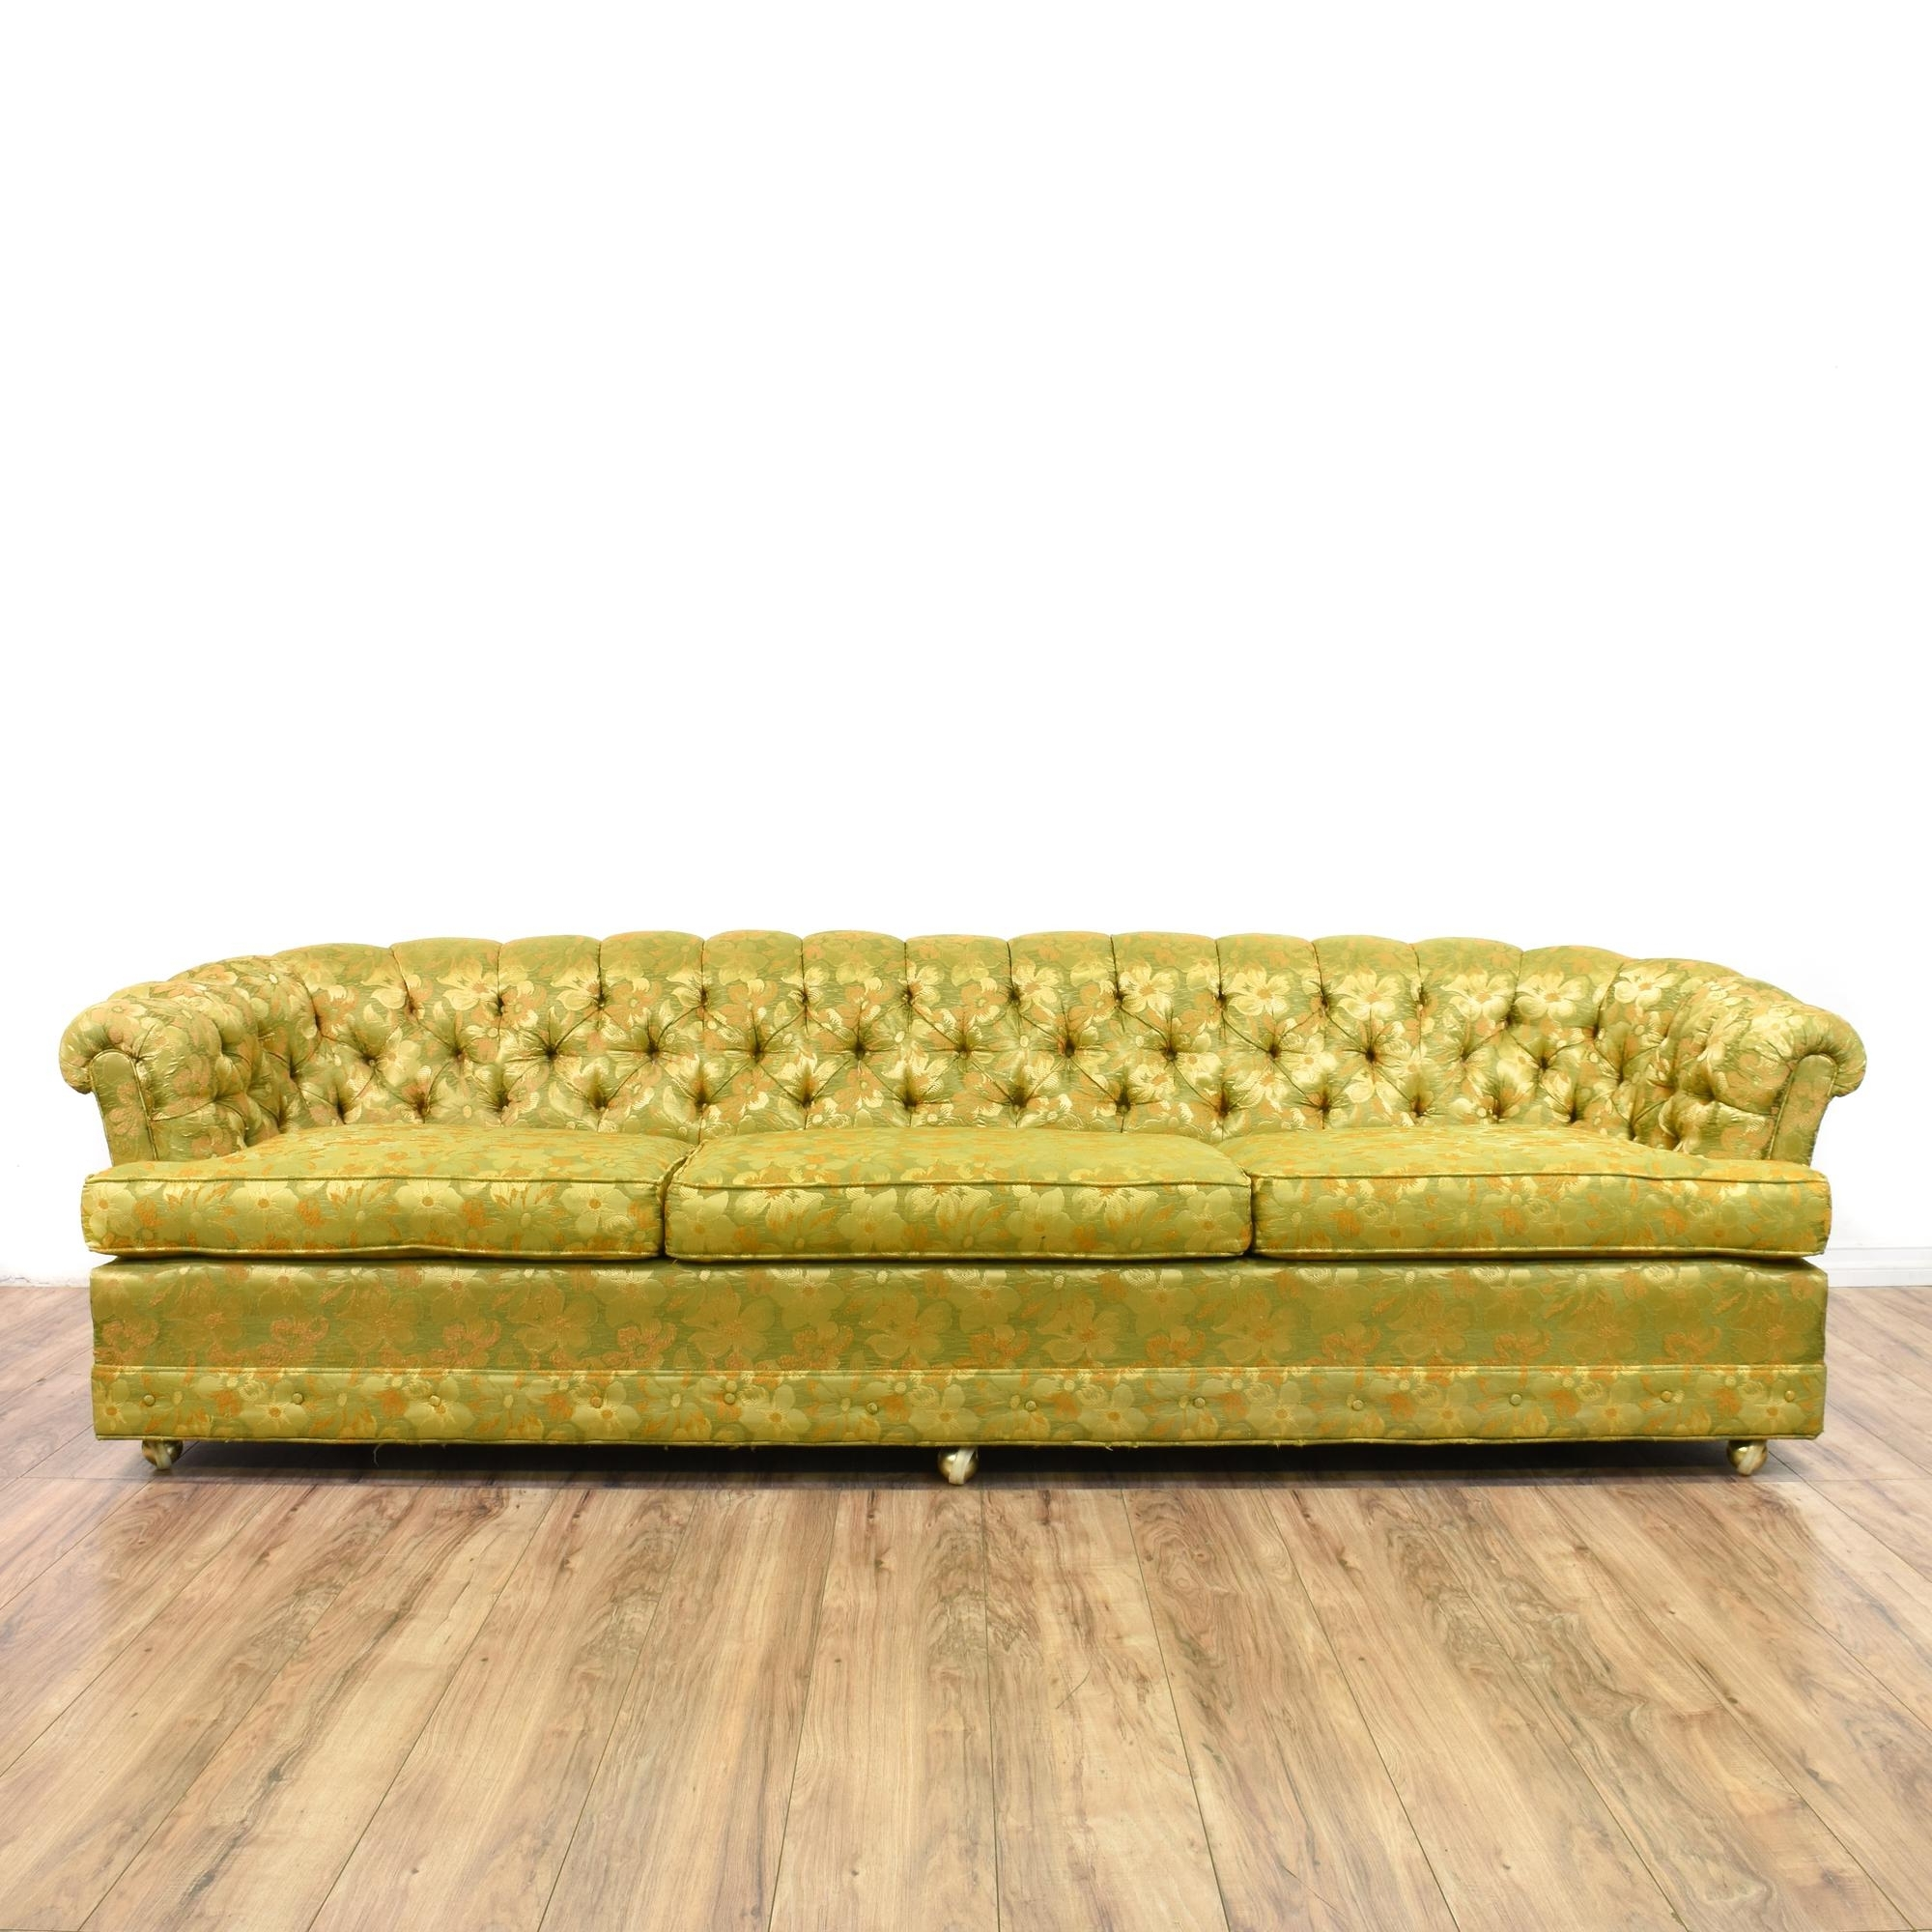 Yellow Chintz Sofas for 2018 This Long Chesterfield Sofa Is Upholstered In A Durable Silk-Like